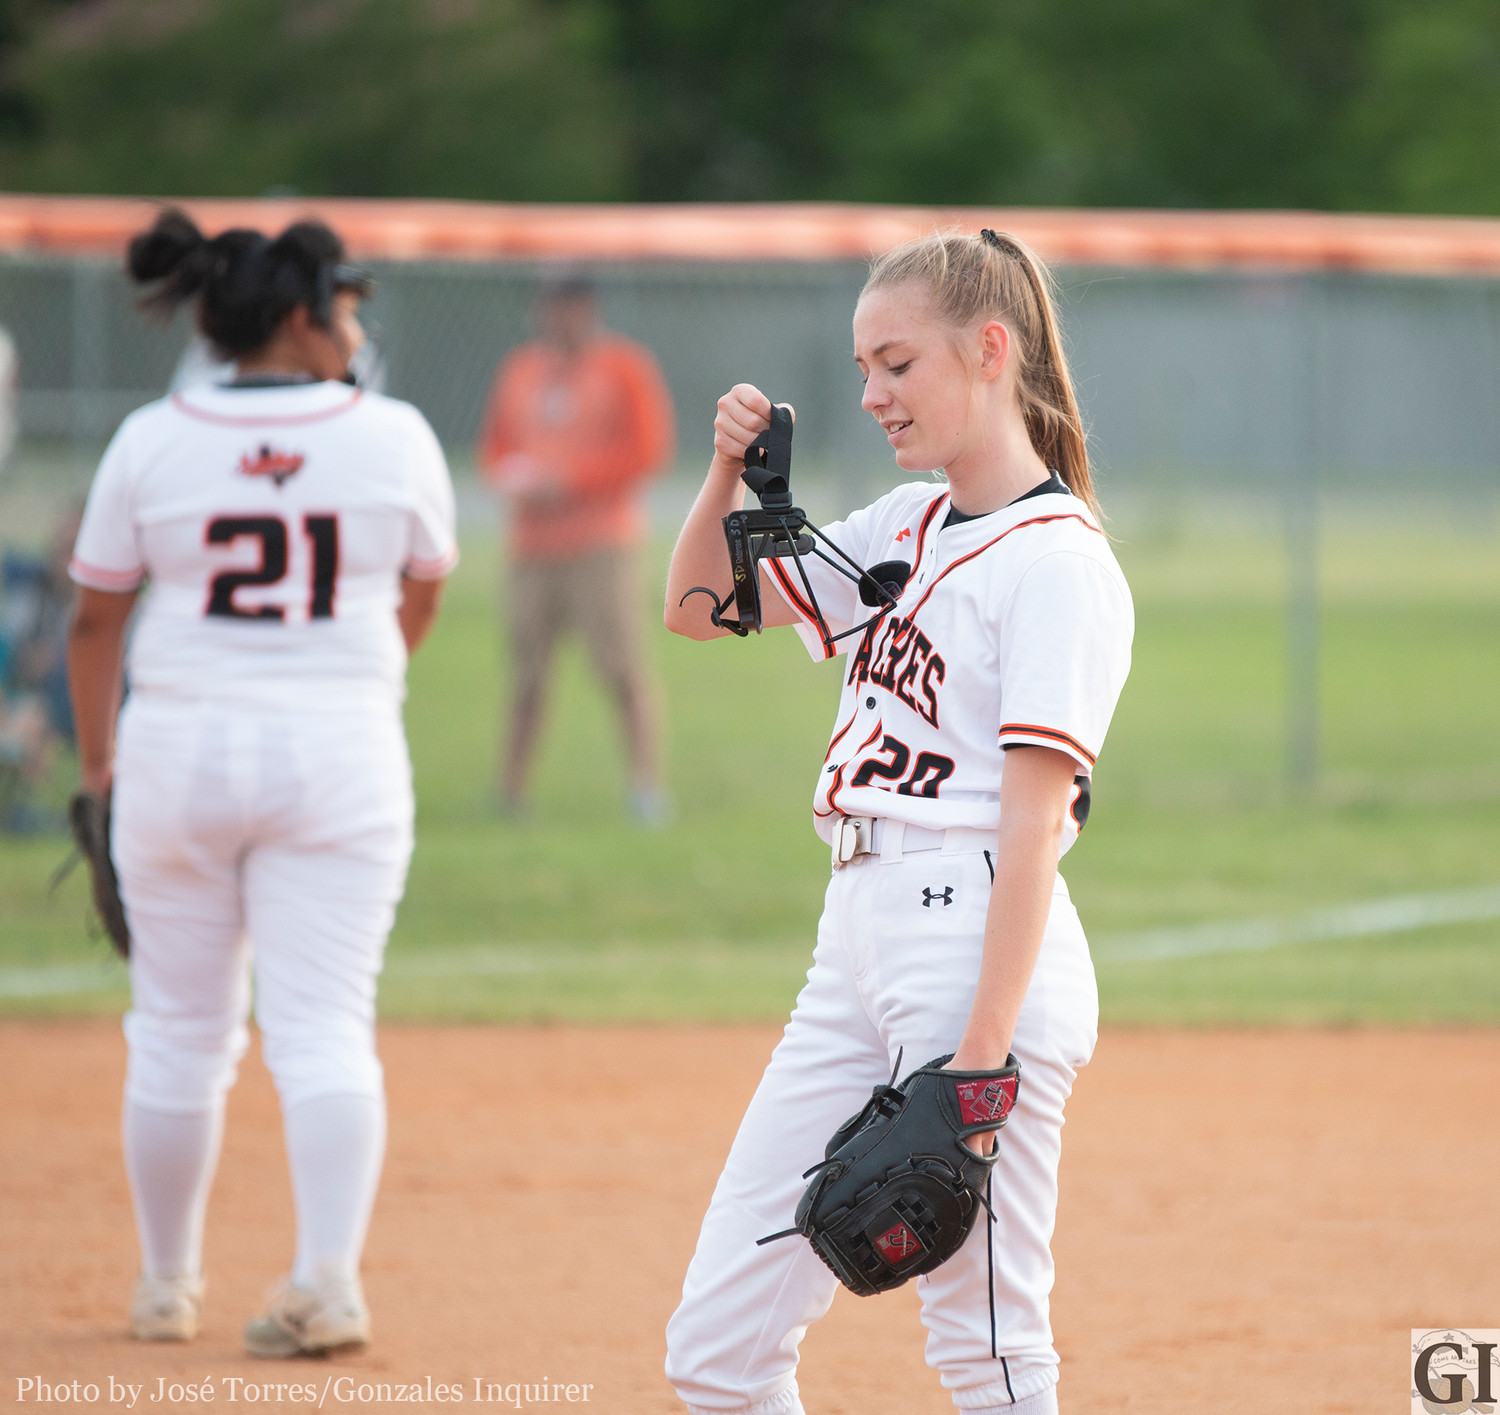 Freshman pitcher and second baseman Shelby Davis was named District 27-4A newcomer of the year.